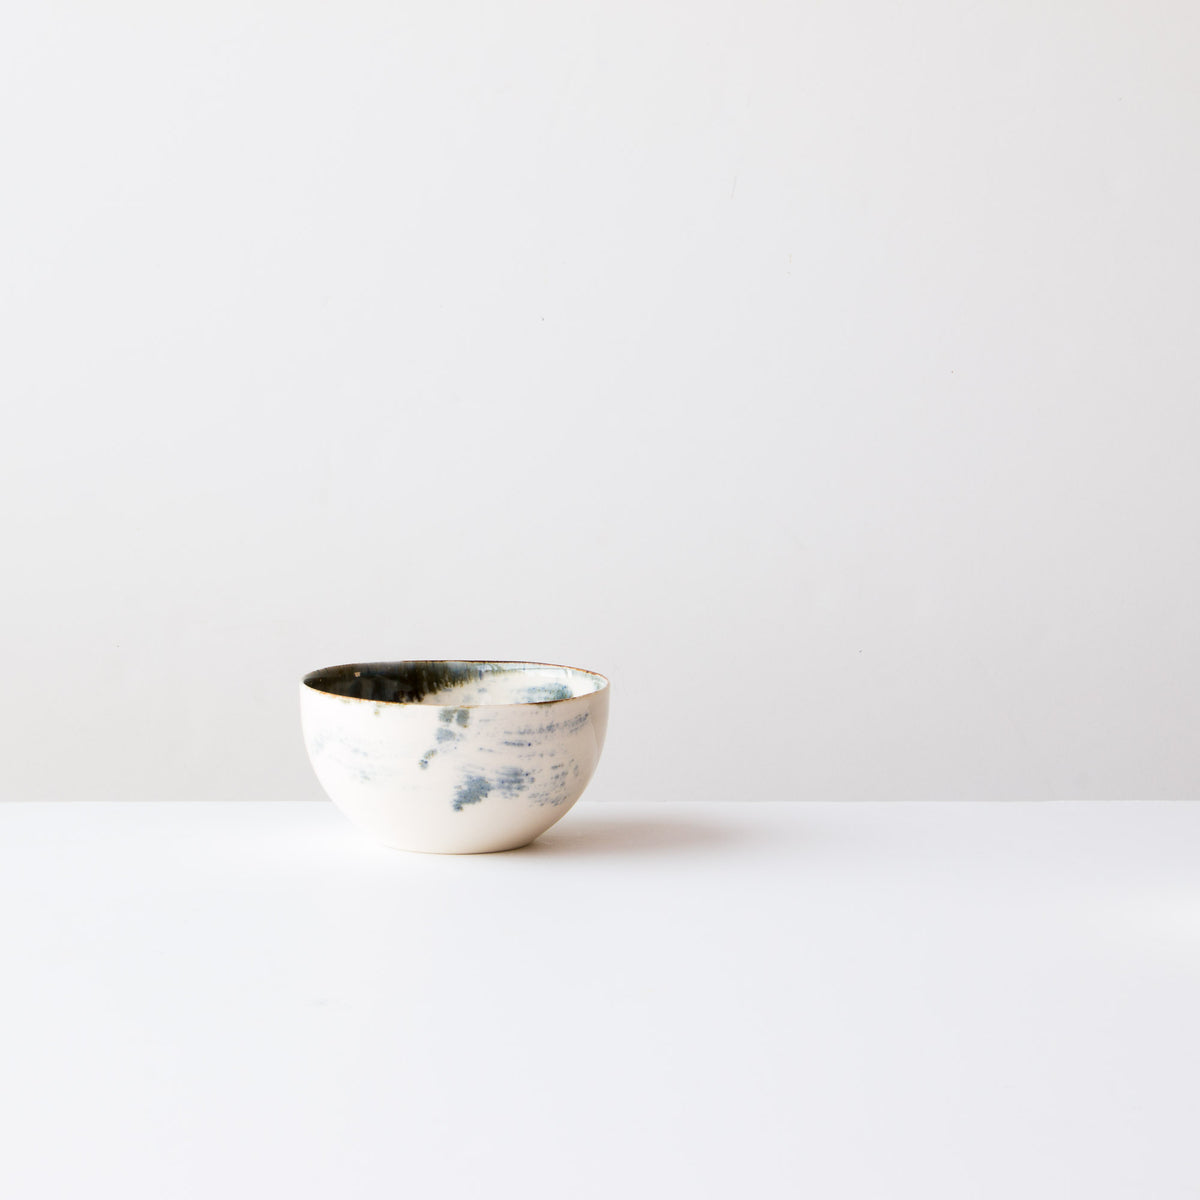 Handmade Porcelain Rice Bowl - White Painted Porcelain - Sold by Chic & Basta